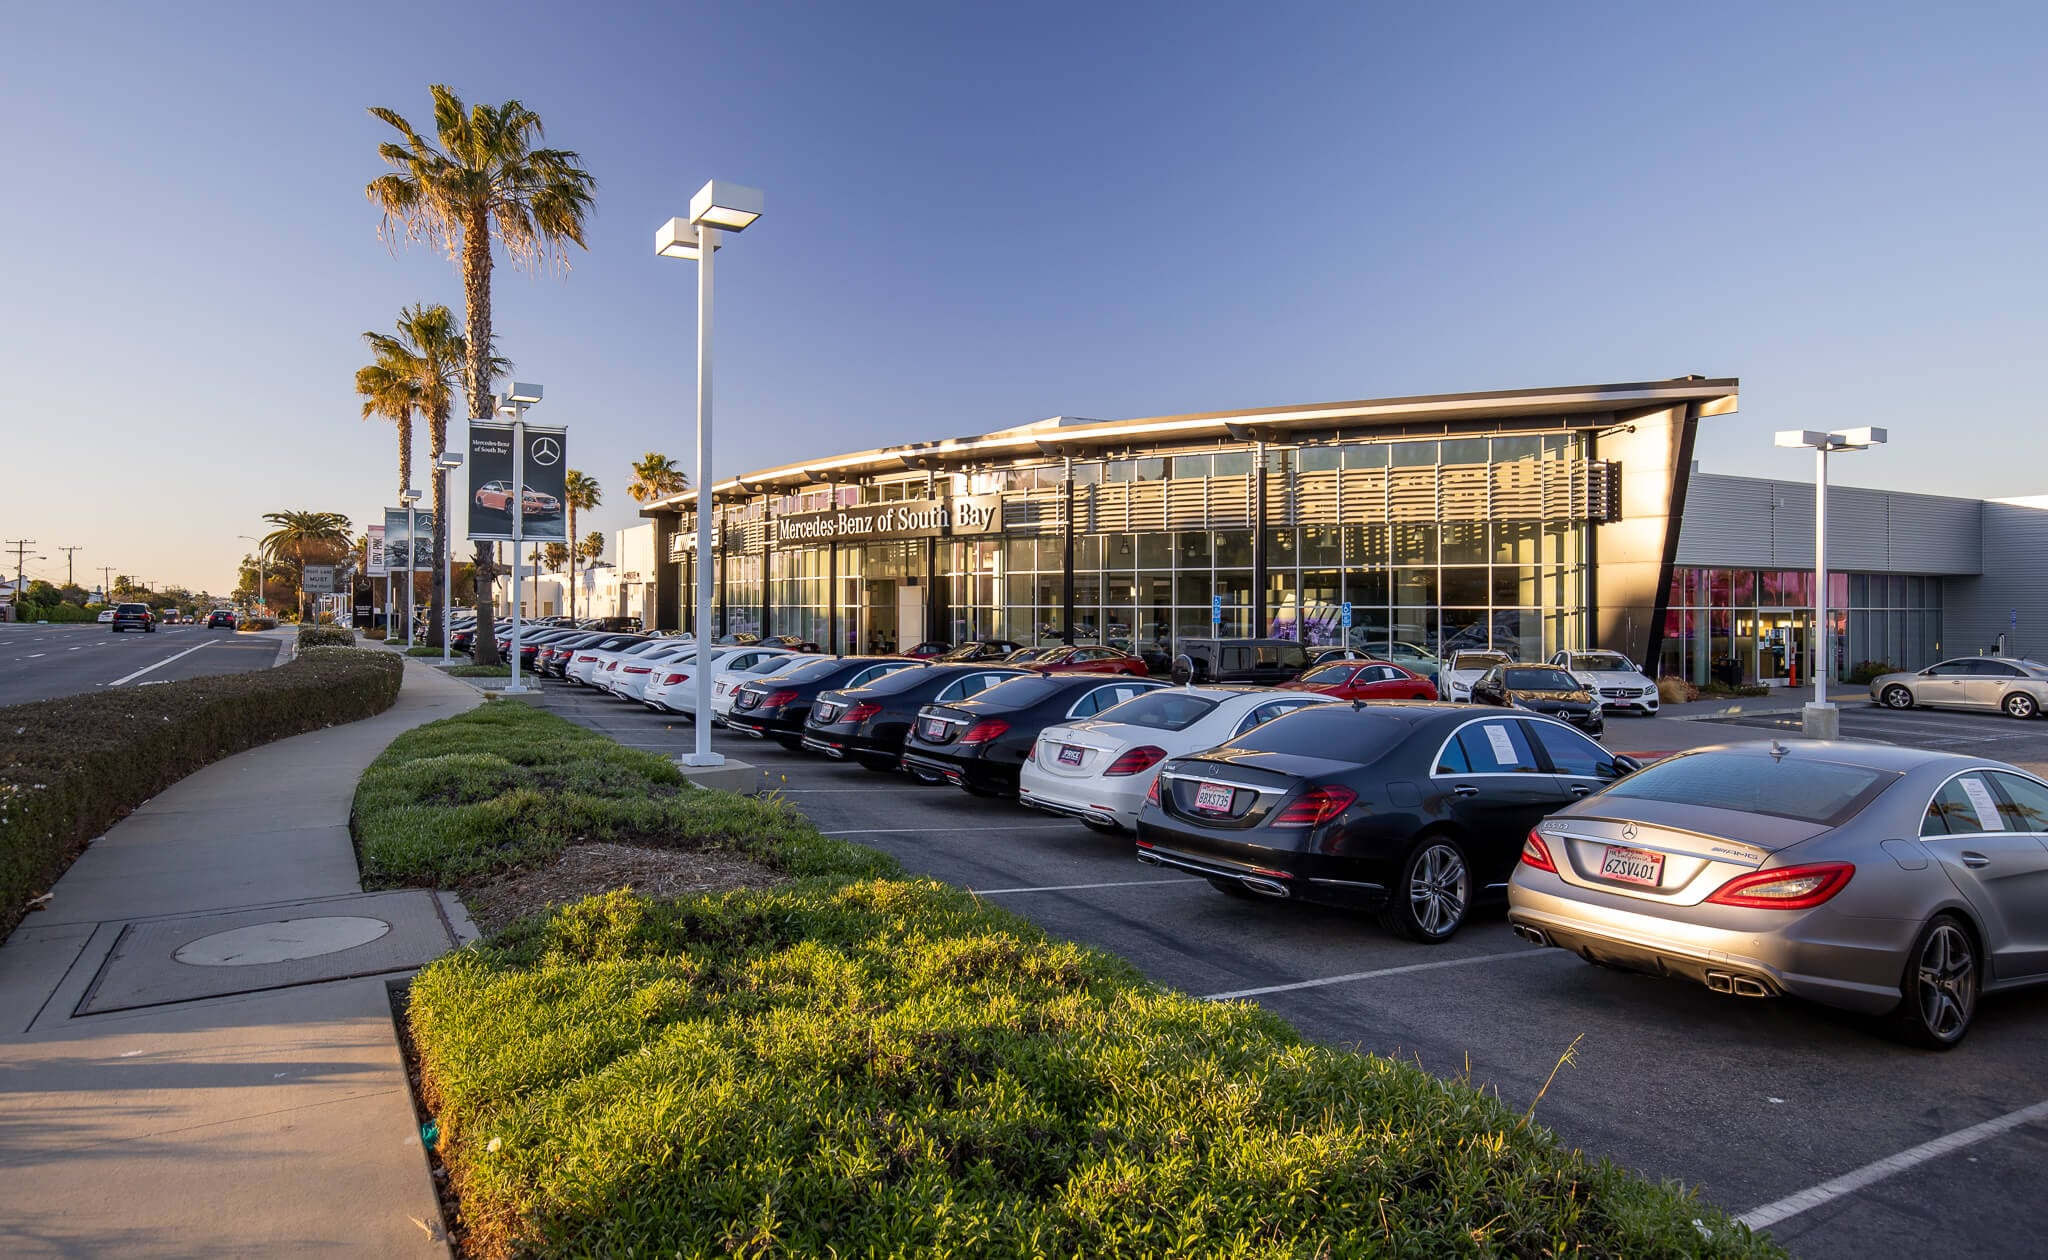 Exterior view of Mercedes-Benz of South Bay